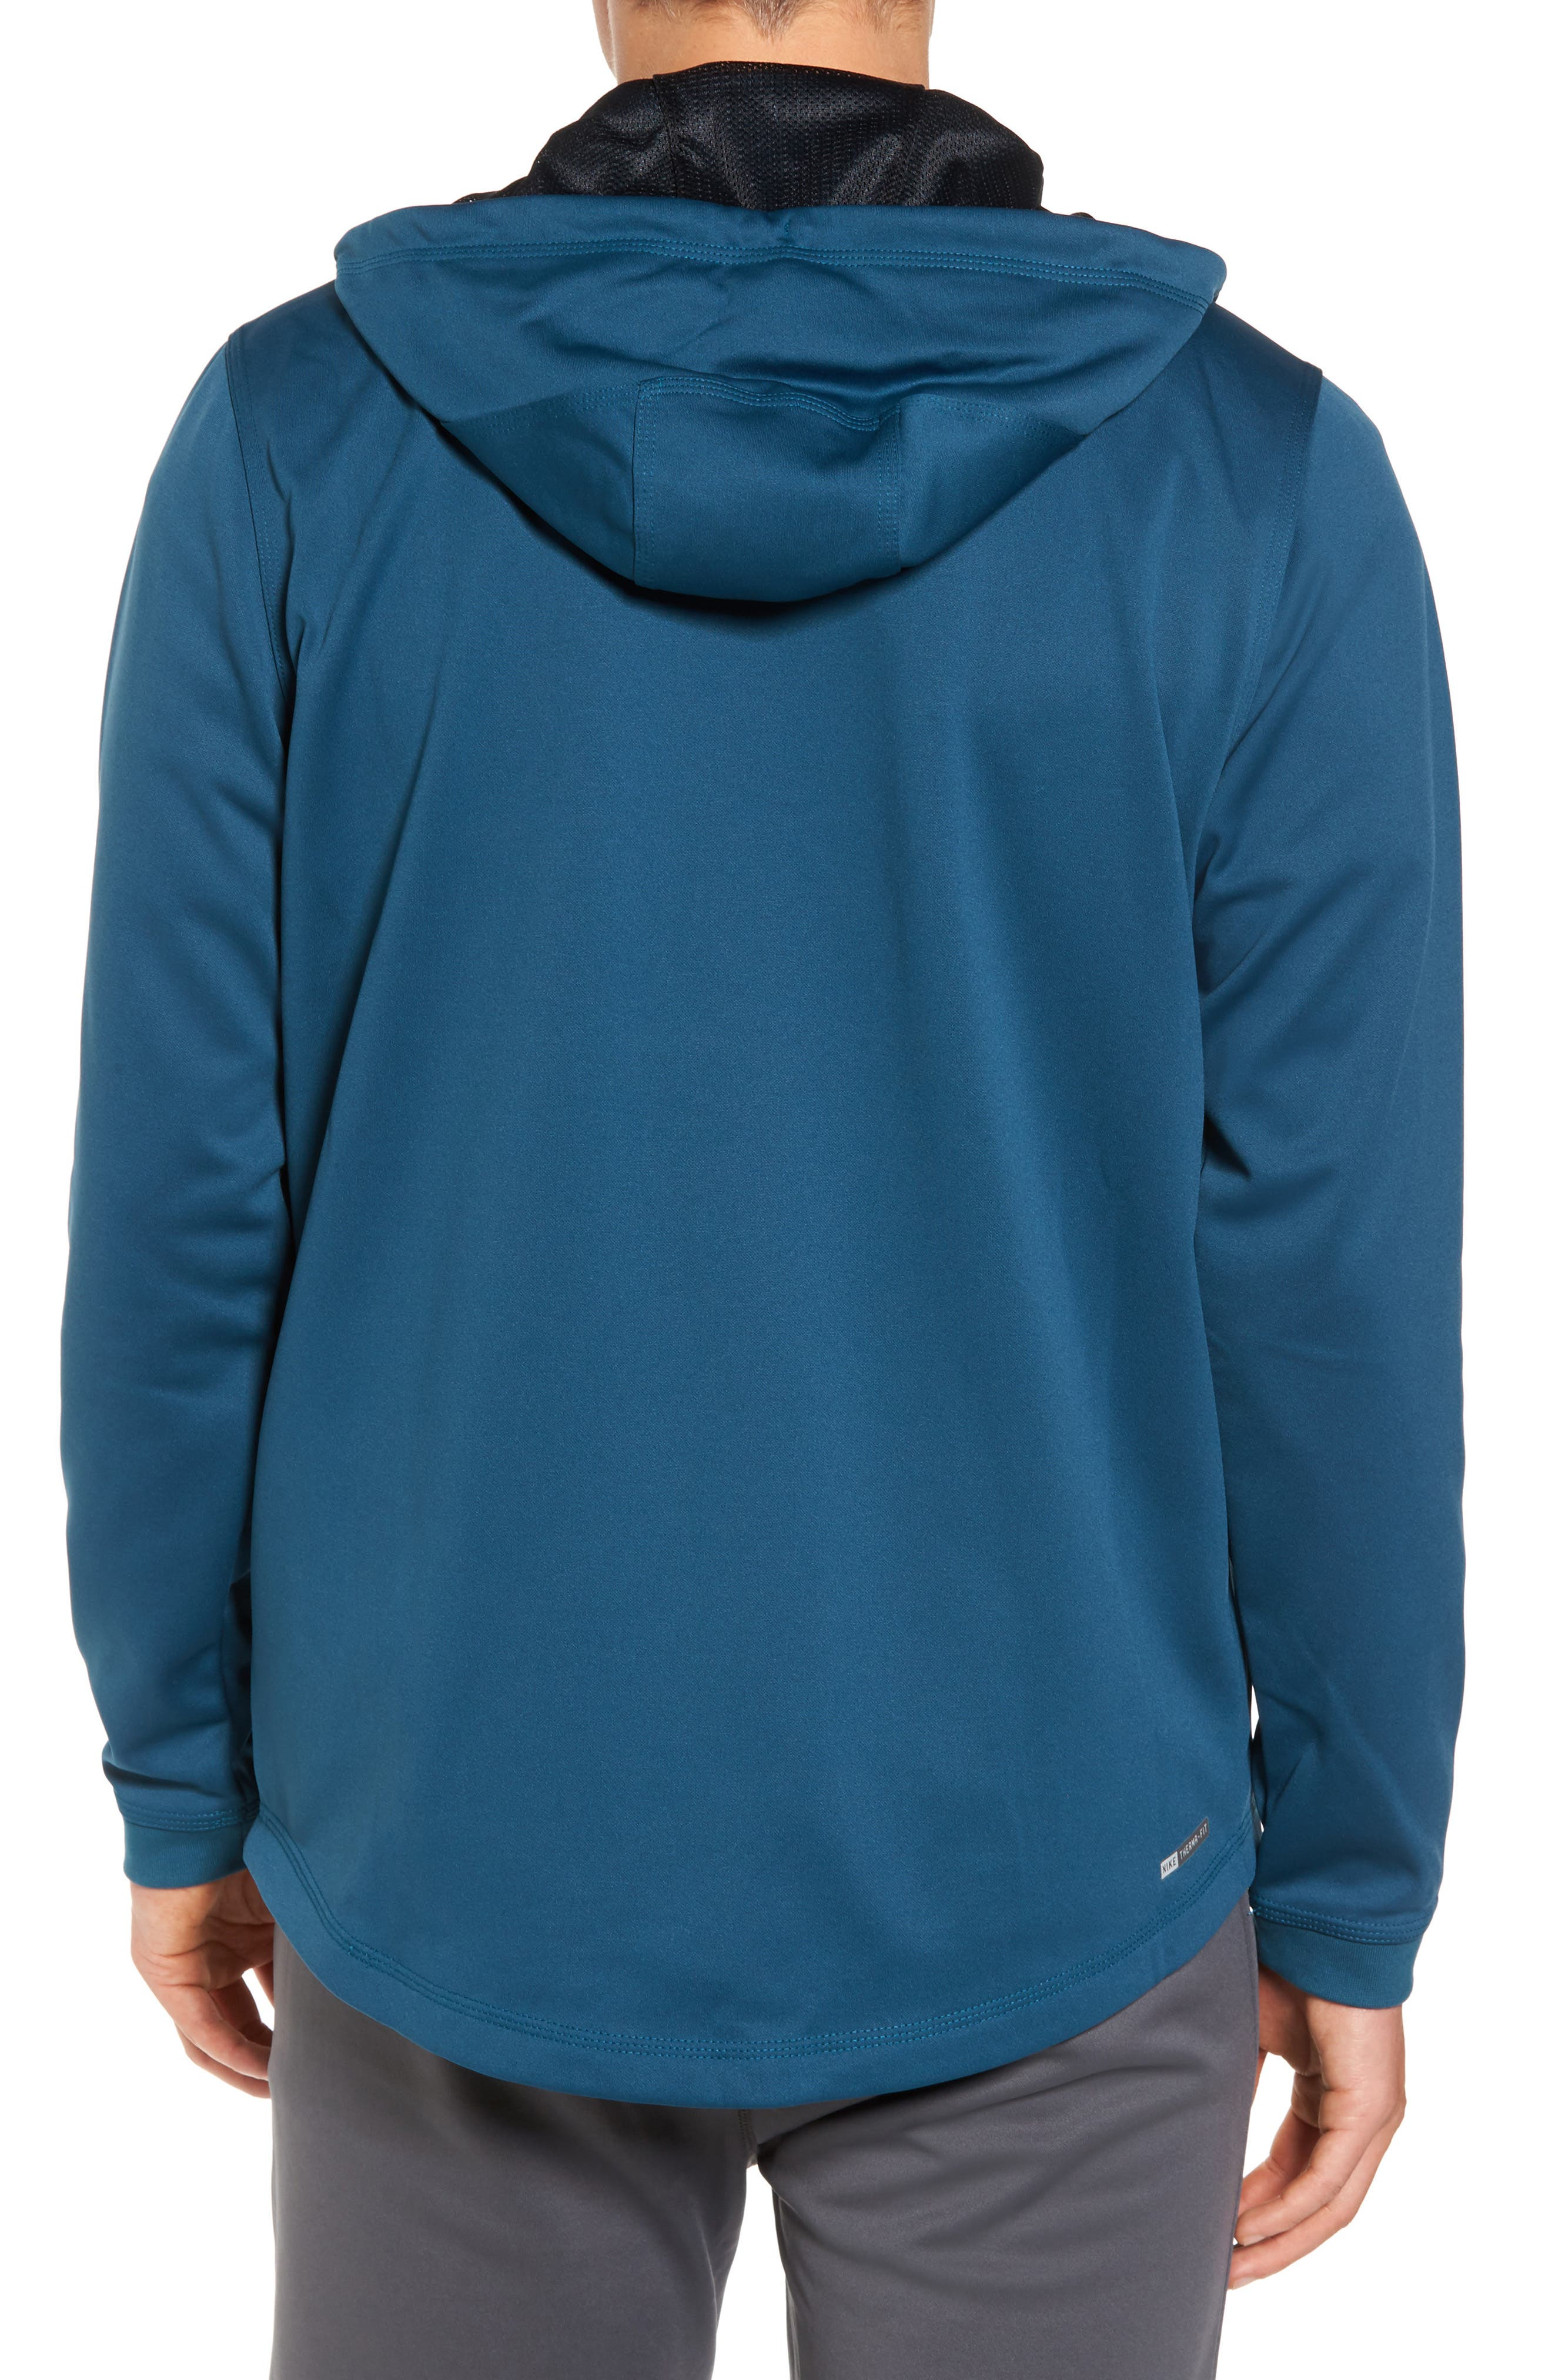 Therma Protect Zip Hoodie,                             Alternate thumbnail 6, color,